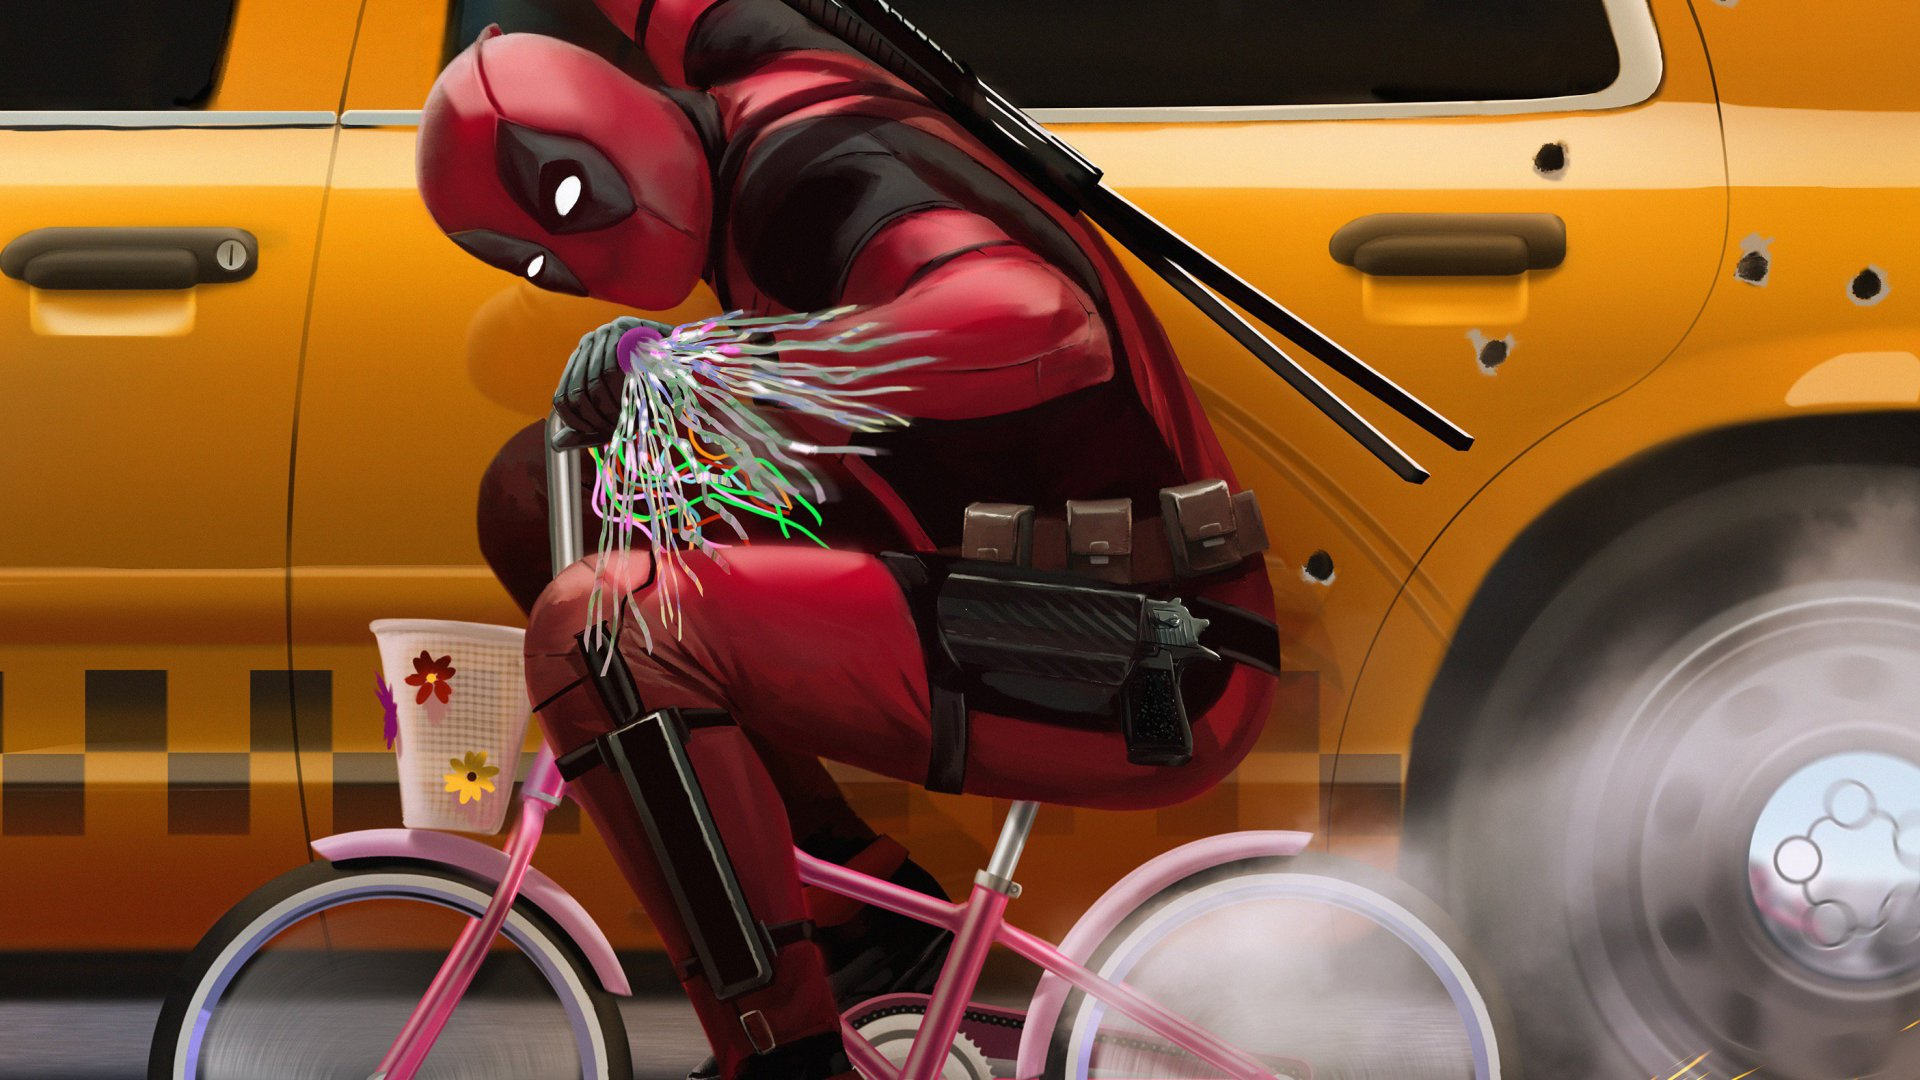 Film - Deadpool 2  Cycle Taxi Duvarkağıdı